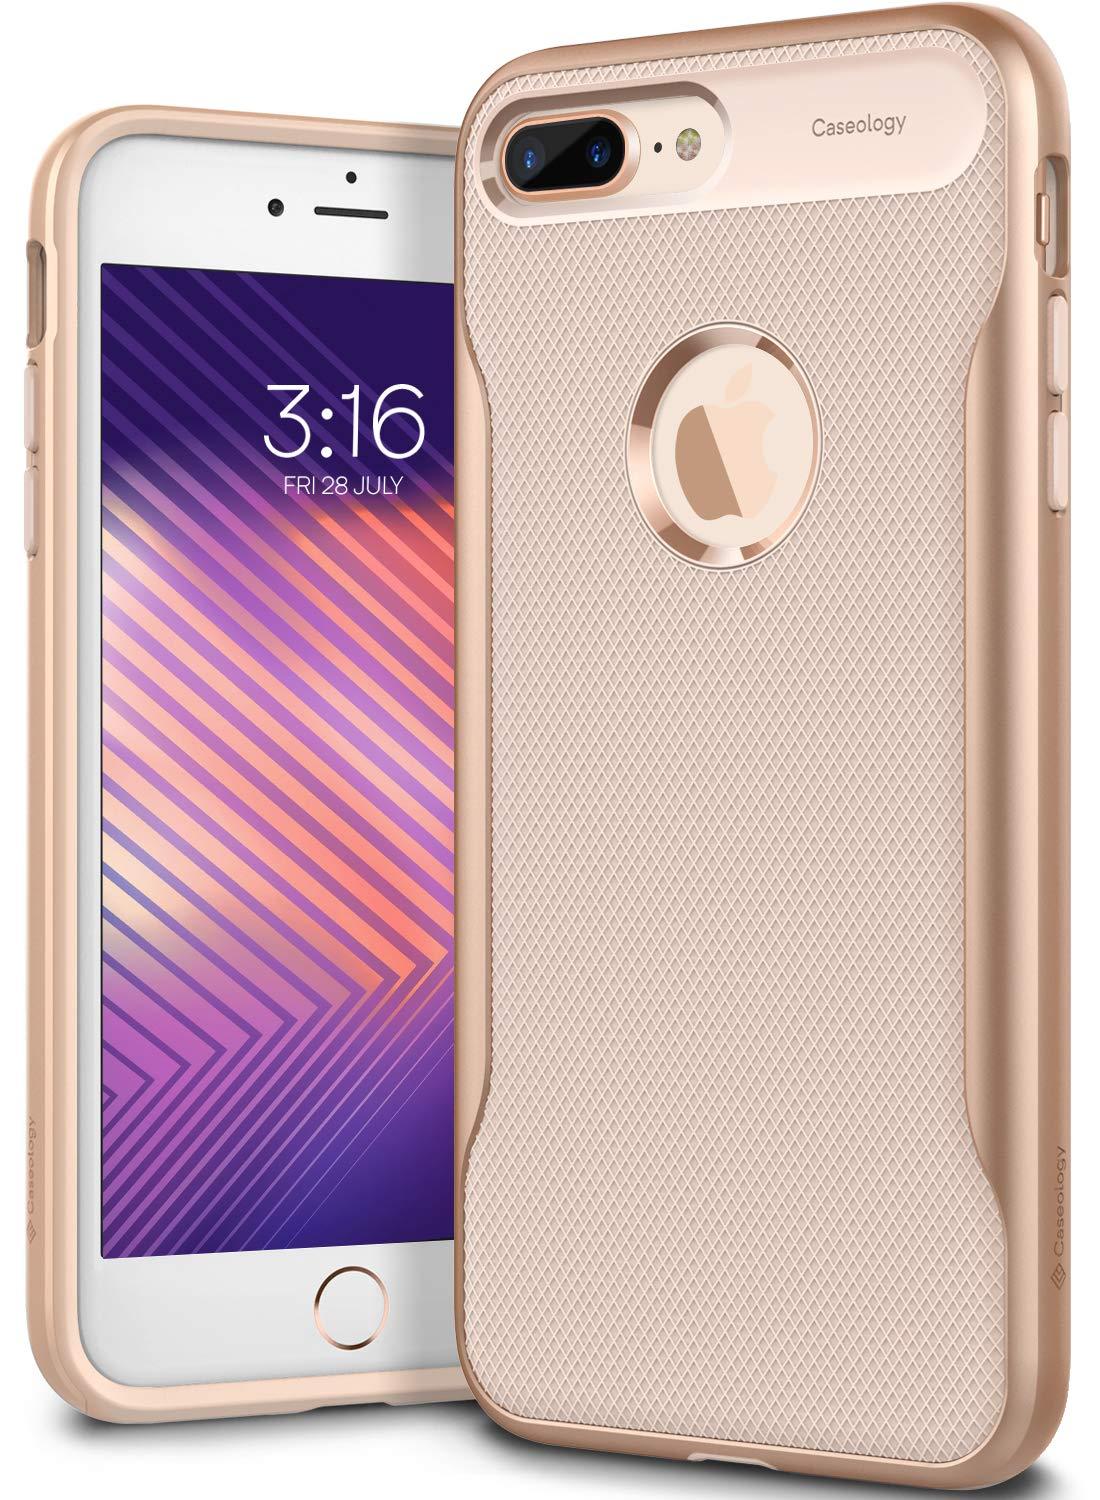 Caseology for iPhone 8 Plus case [Apex Series] - Slim Fit Shockproof Heavy Duty Hard Bumper Textured Geometric Design Case for iPhone 8 Plus Only - Beige Gold